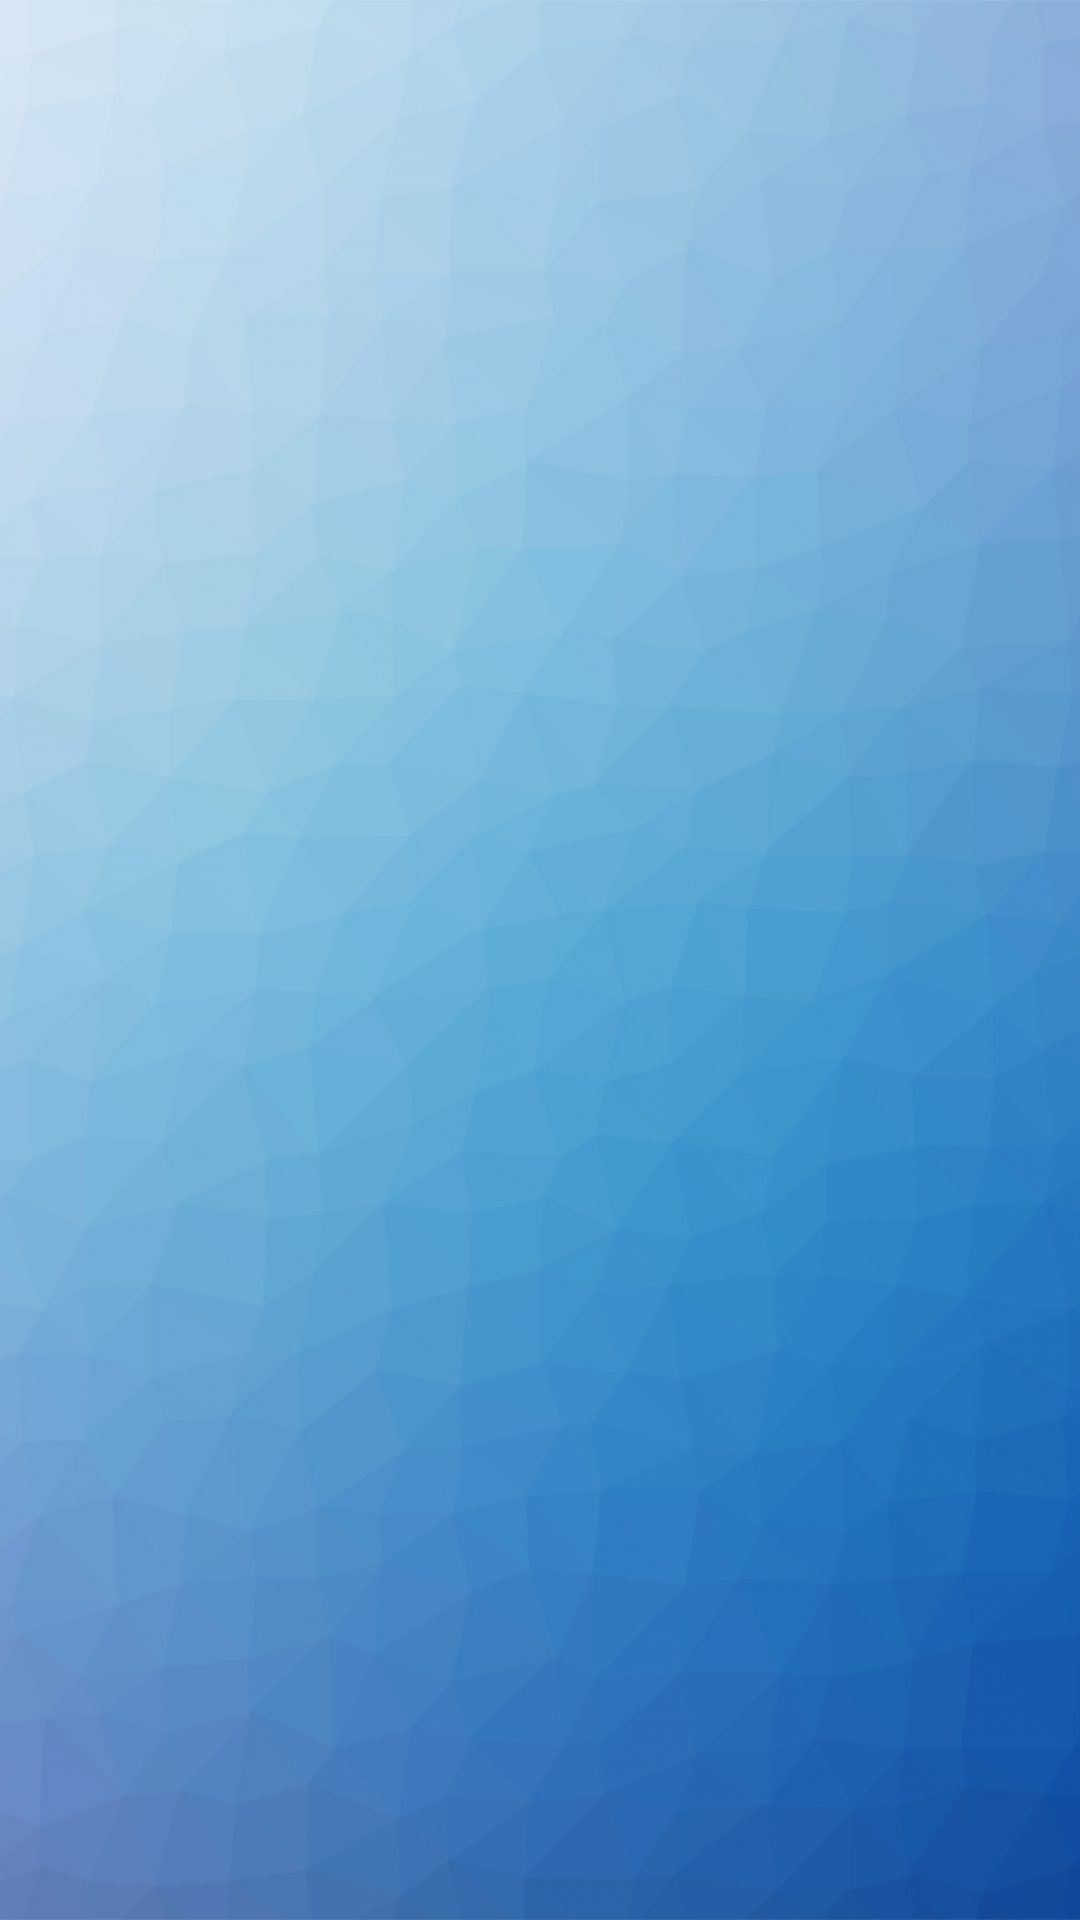 Polygon Art Blue Abstract Pattern